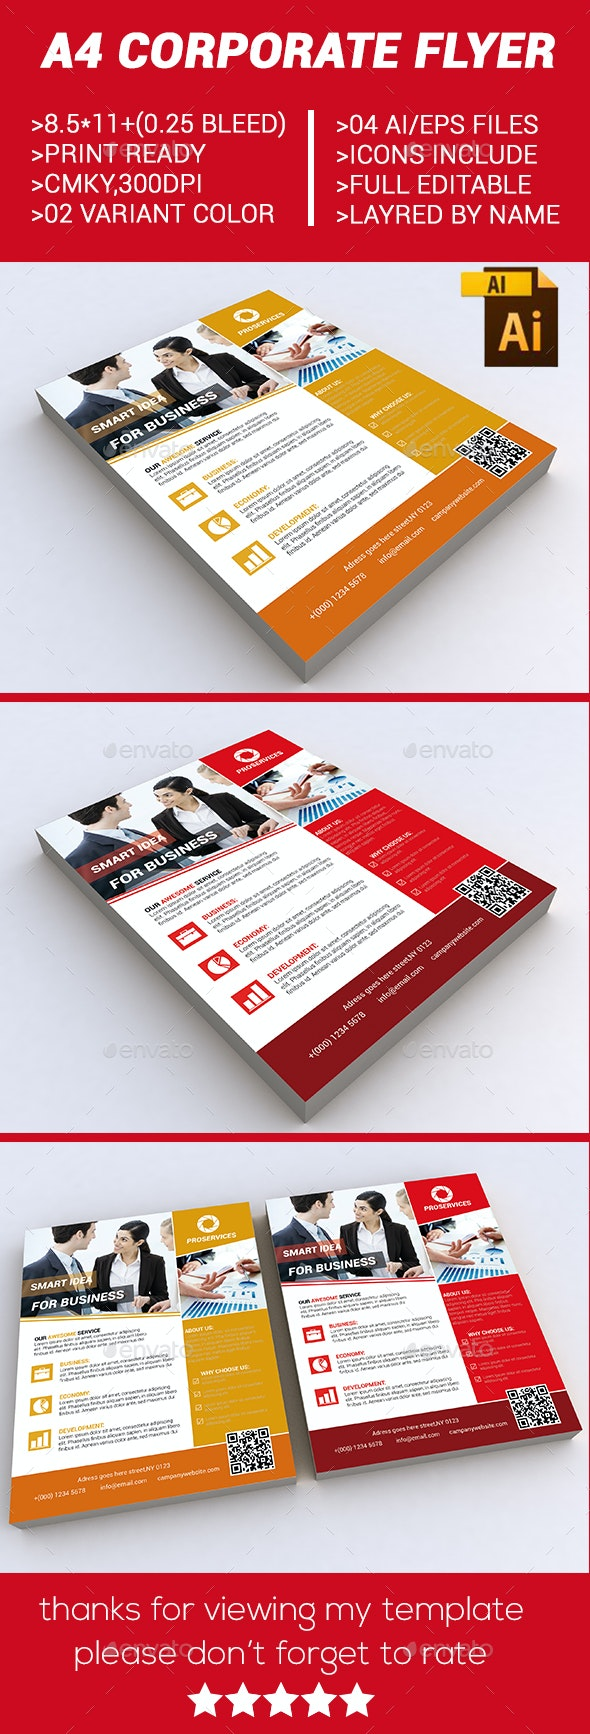 A4 corporate flyer - Corporate Flyers